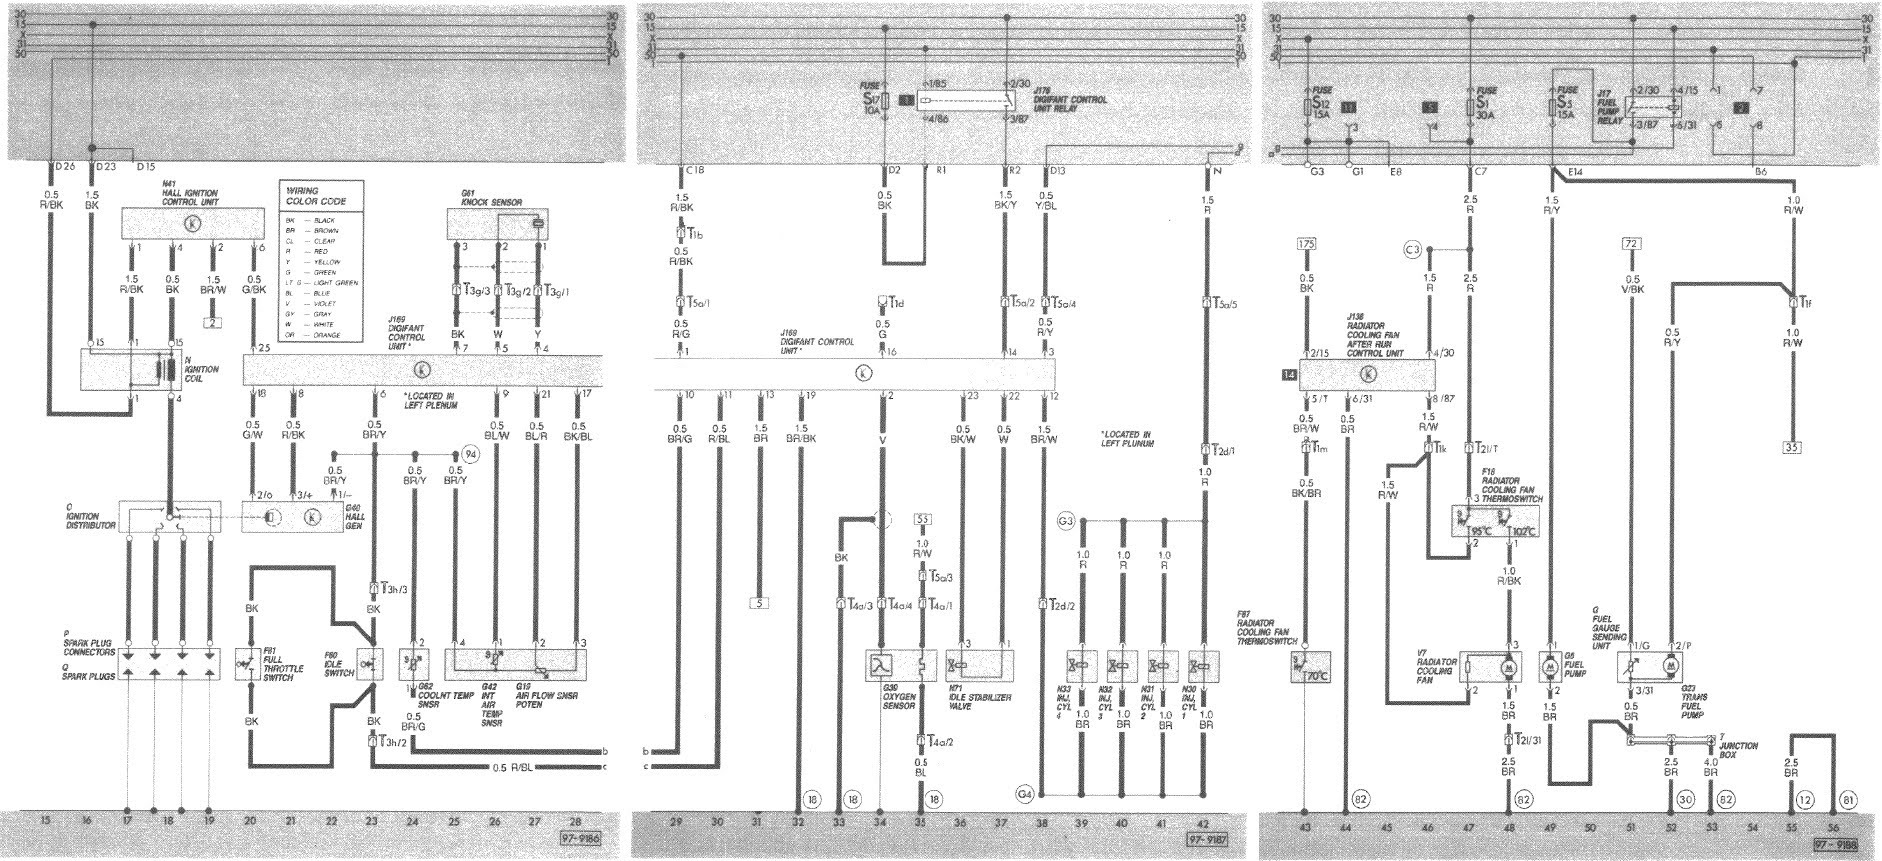 Vw Golf Wiring Diagram - Wiring Diagrams Clicks  Beetle Abs Wiring Diagram on 2000 beetle relay location, 2000 beetle engine, 2000 beetle frame, 1600cc vw engine diagram, vw beetle diagram, 2000 beetle parts, vw charging system diagram, 2000 beetle hose, 1999 passat relay diagram, 2000 beetle headlight switch, vw jetta electrical diagram, 2000 beetle radio fuse, 2001 audi tt fuse diagram, 2000 beetle power steering, 1999 volkswagen beetle engine diagram, 2000 beetle exhaust, 2000 jetta cooling system diagram, 2000 beetle clutch, 2000 beetle air conditioning, 1974 vw engine diagram,